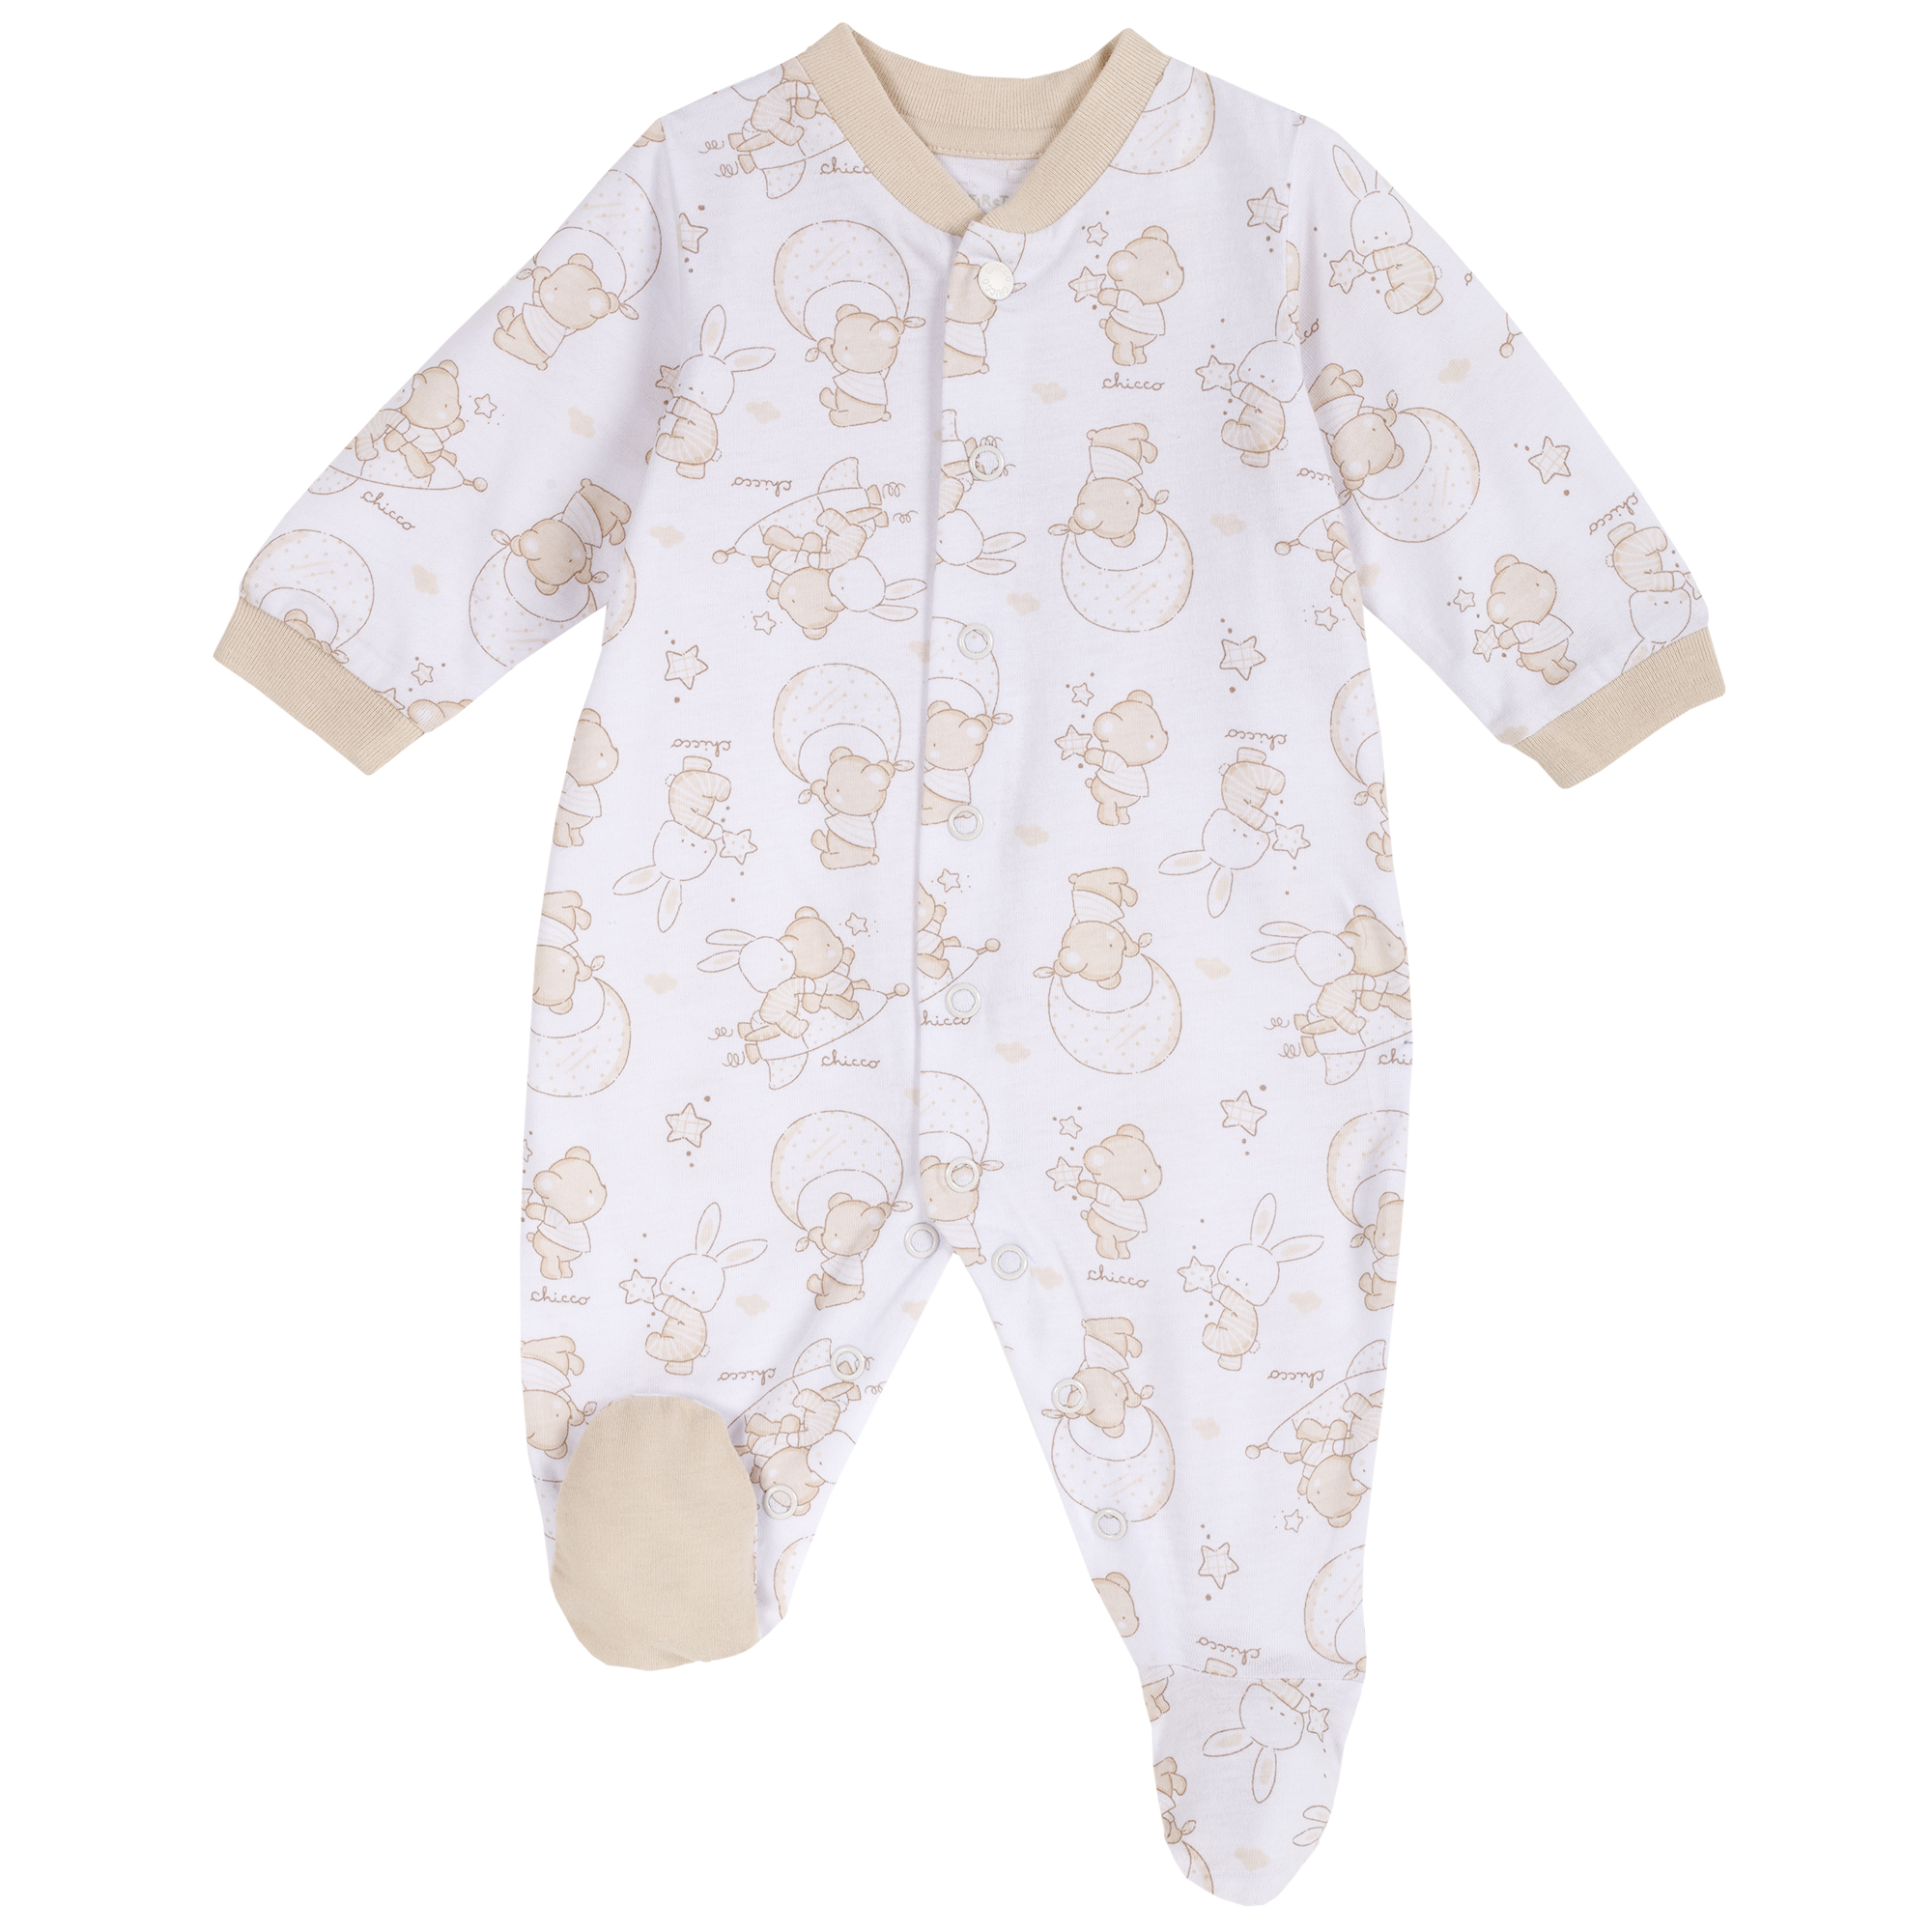 Salopeta bebe Chicco, inchidere intre picioare, multicolor, 21804 din categoria Salopete/Body